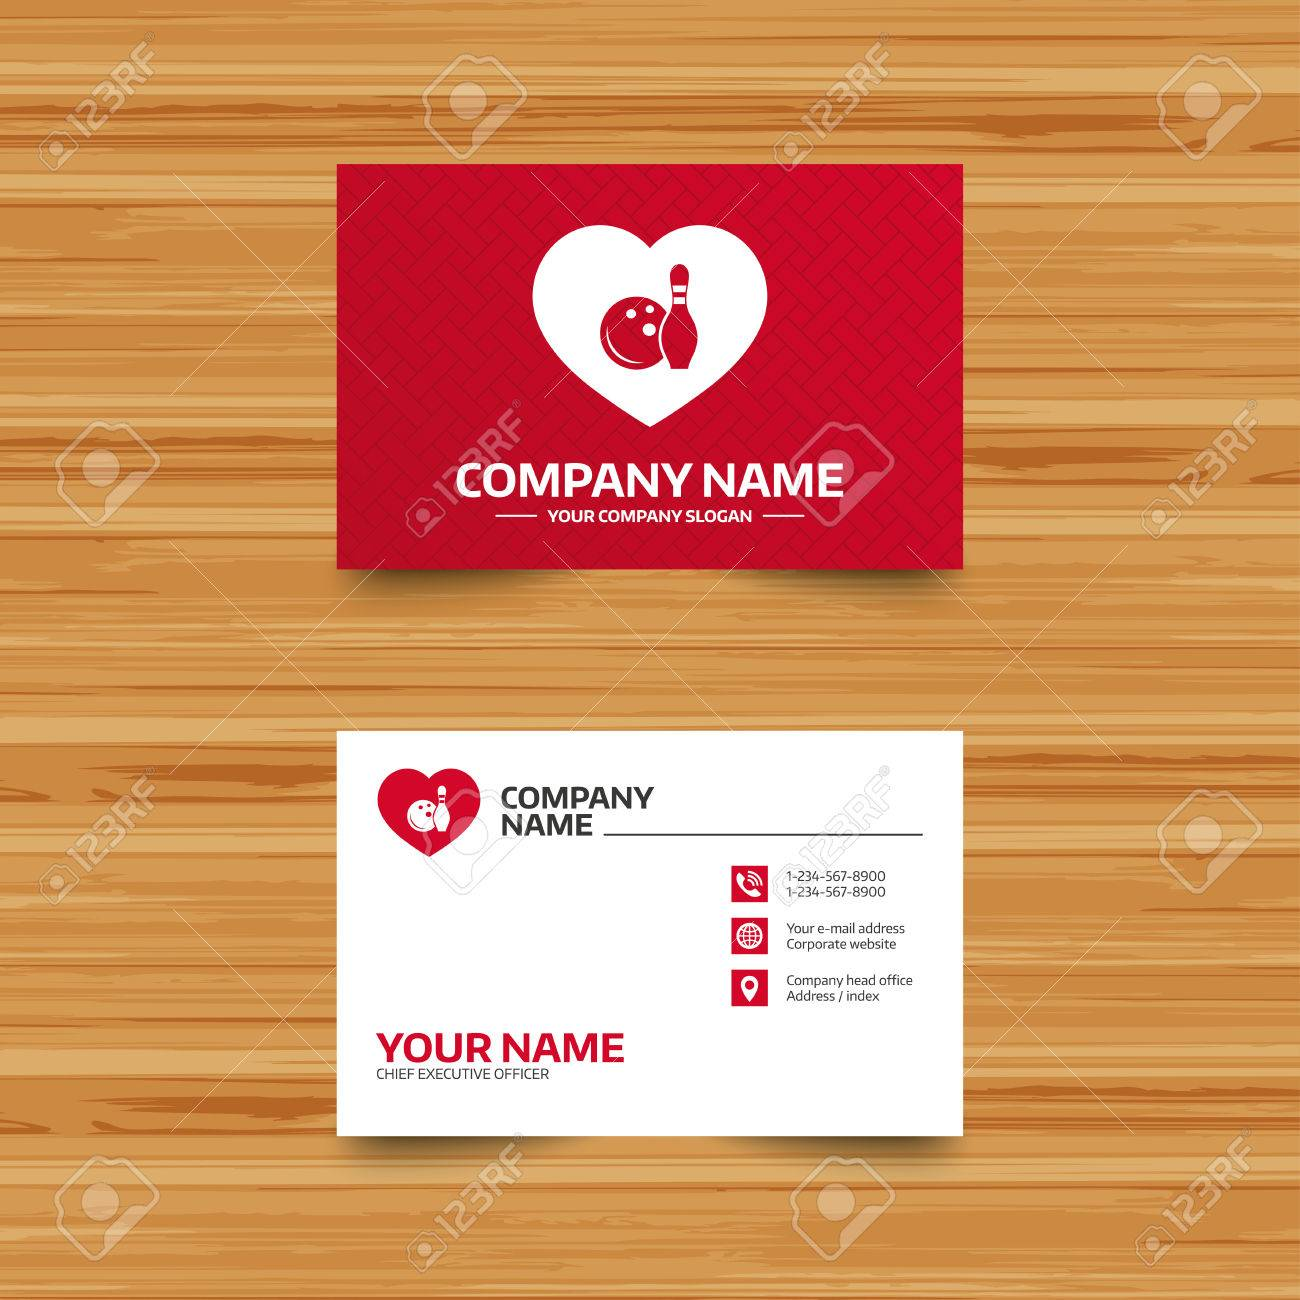 Business Cards Express Marlton Nj Gallery - Card Design And Card ...